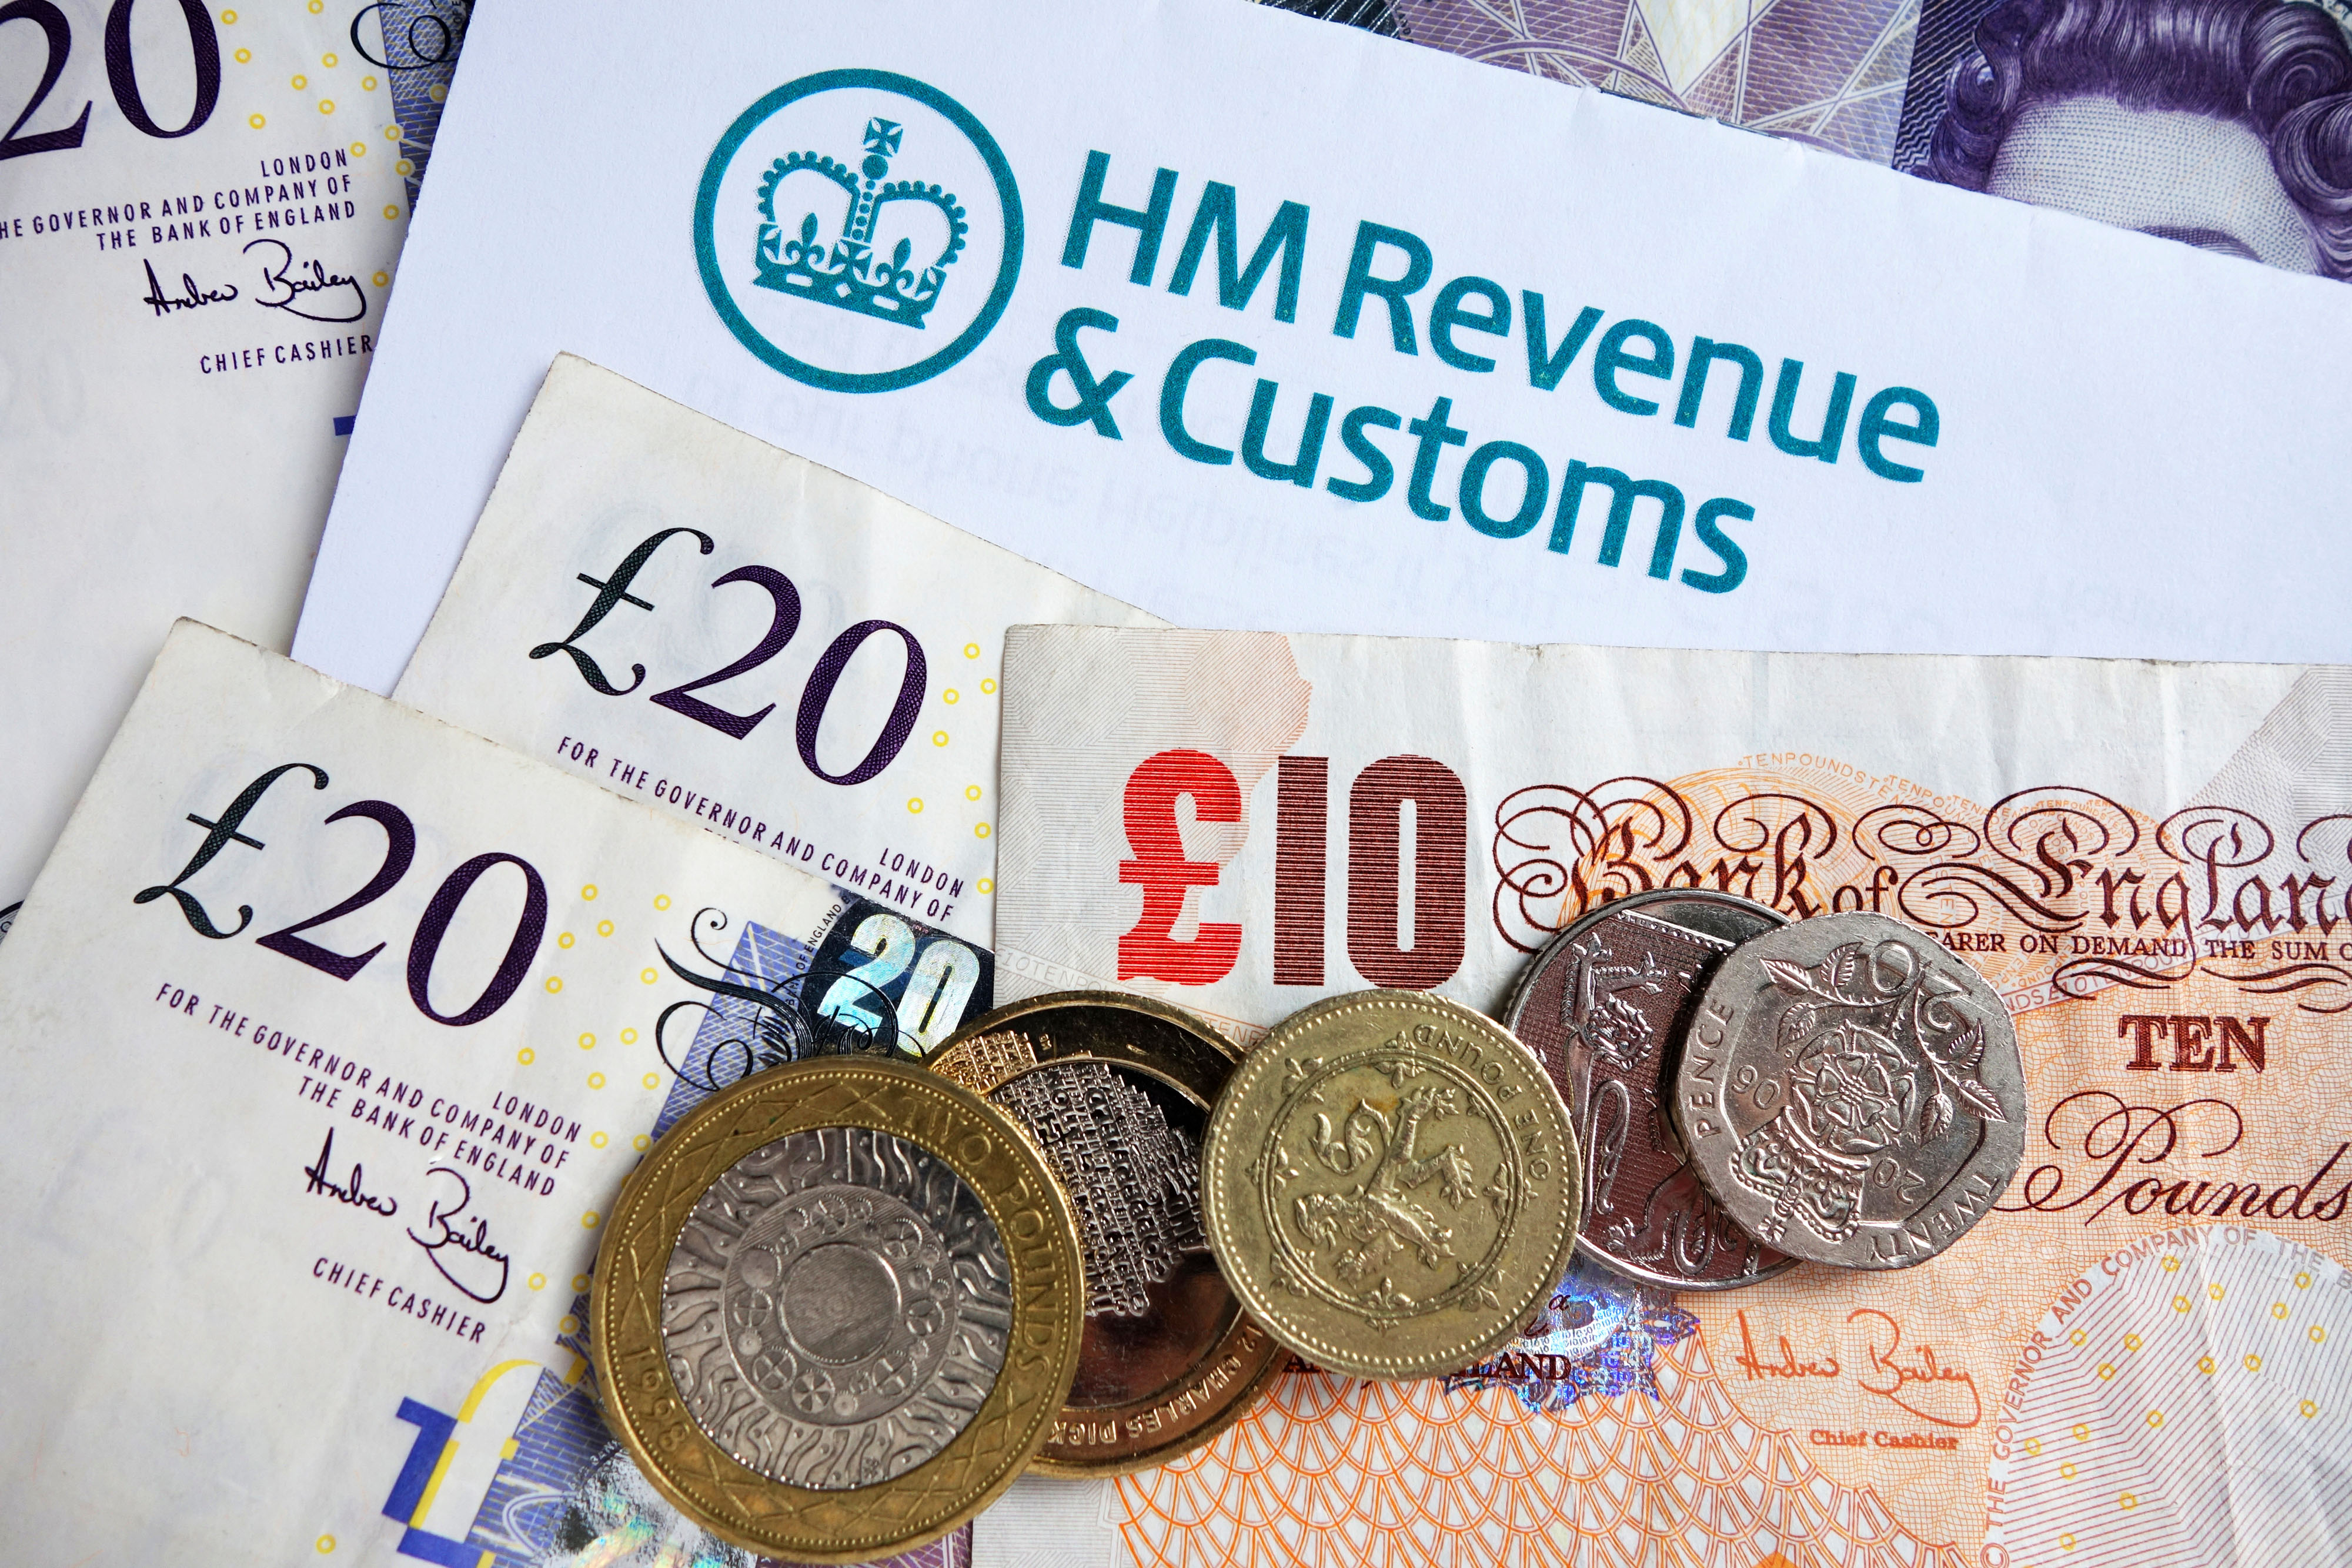 Pay As You Earn (PAYE) is the system used by employers to pay income taxes to HMRC